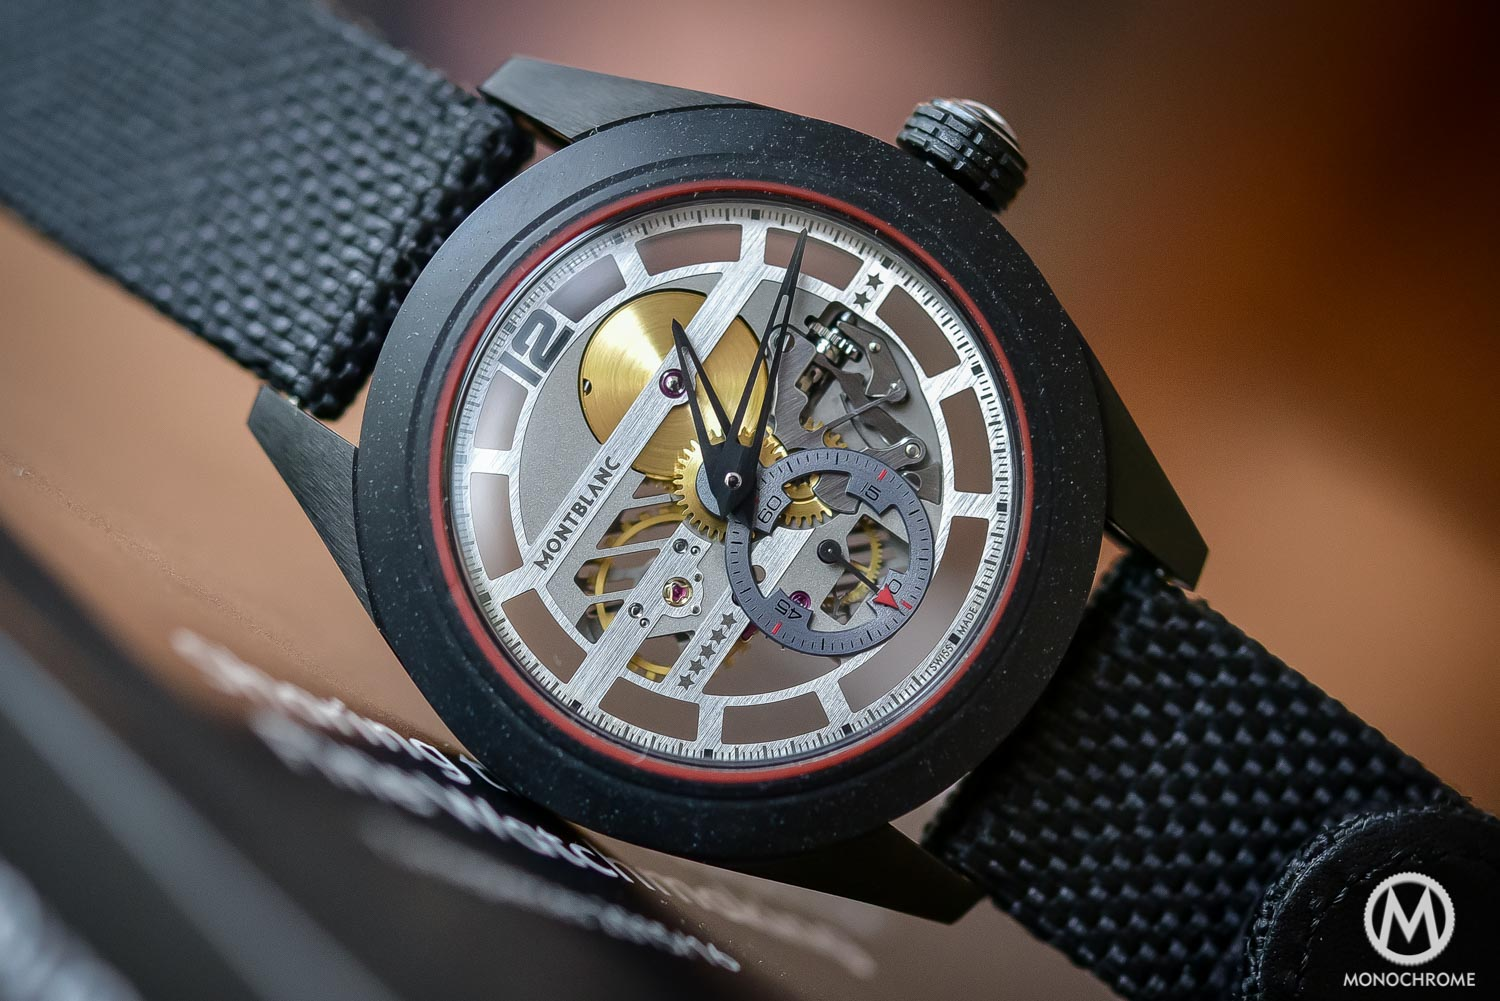 Montblanc TimeWalker Pythagore Ultra-Light Concept - Exclusive Hands-On - 2